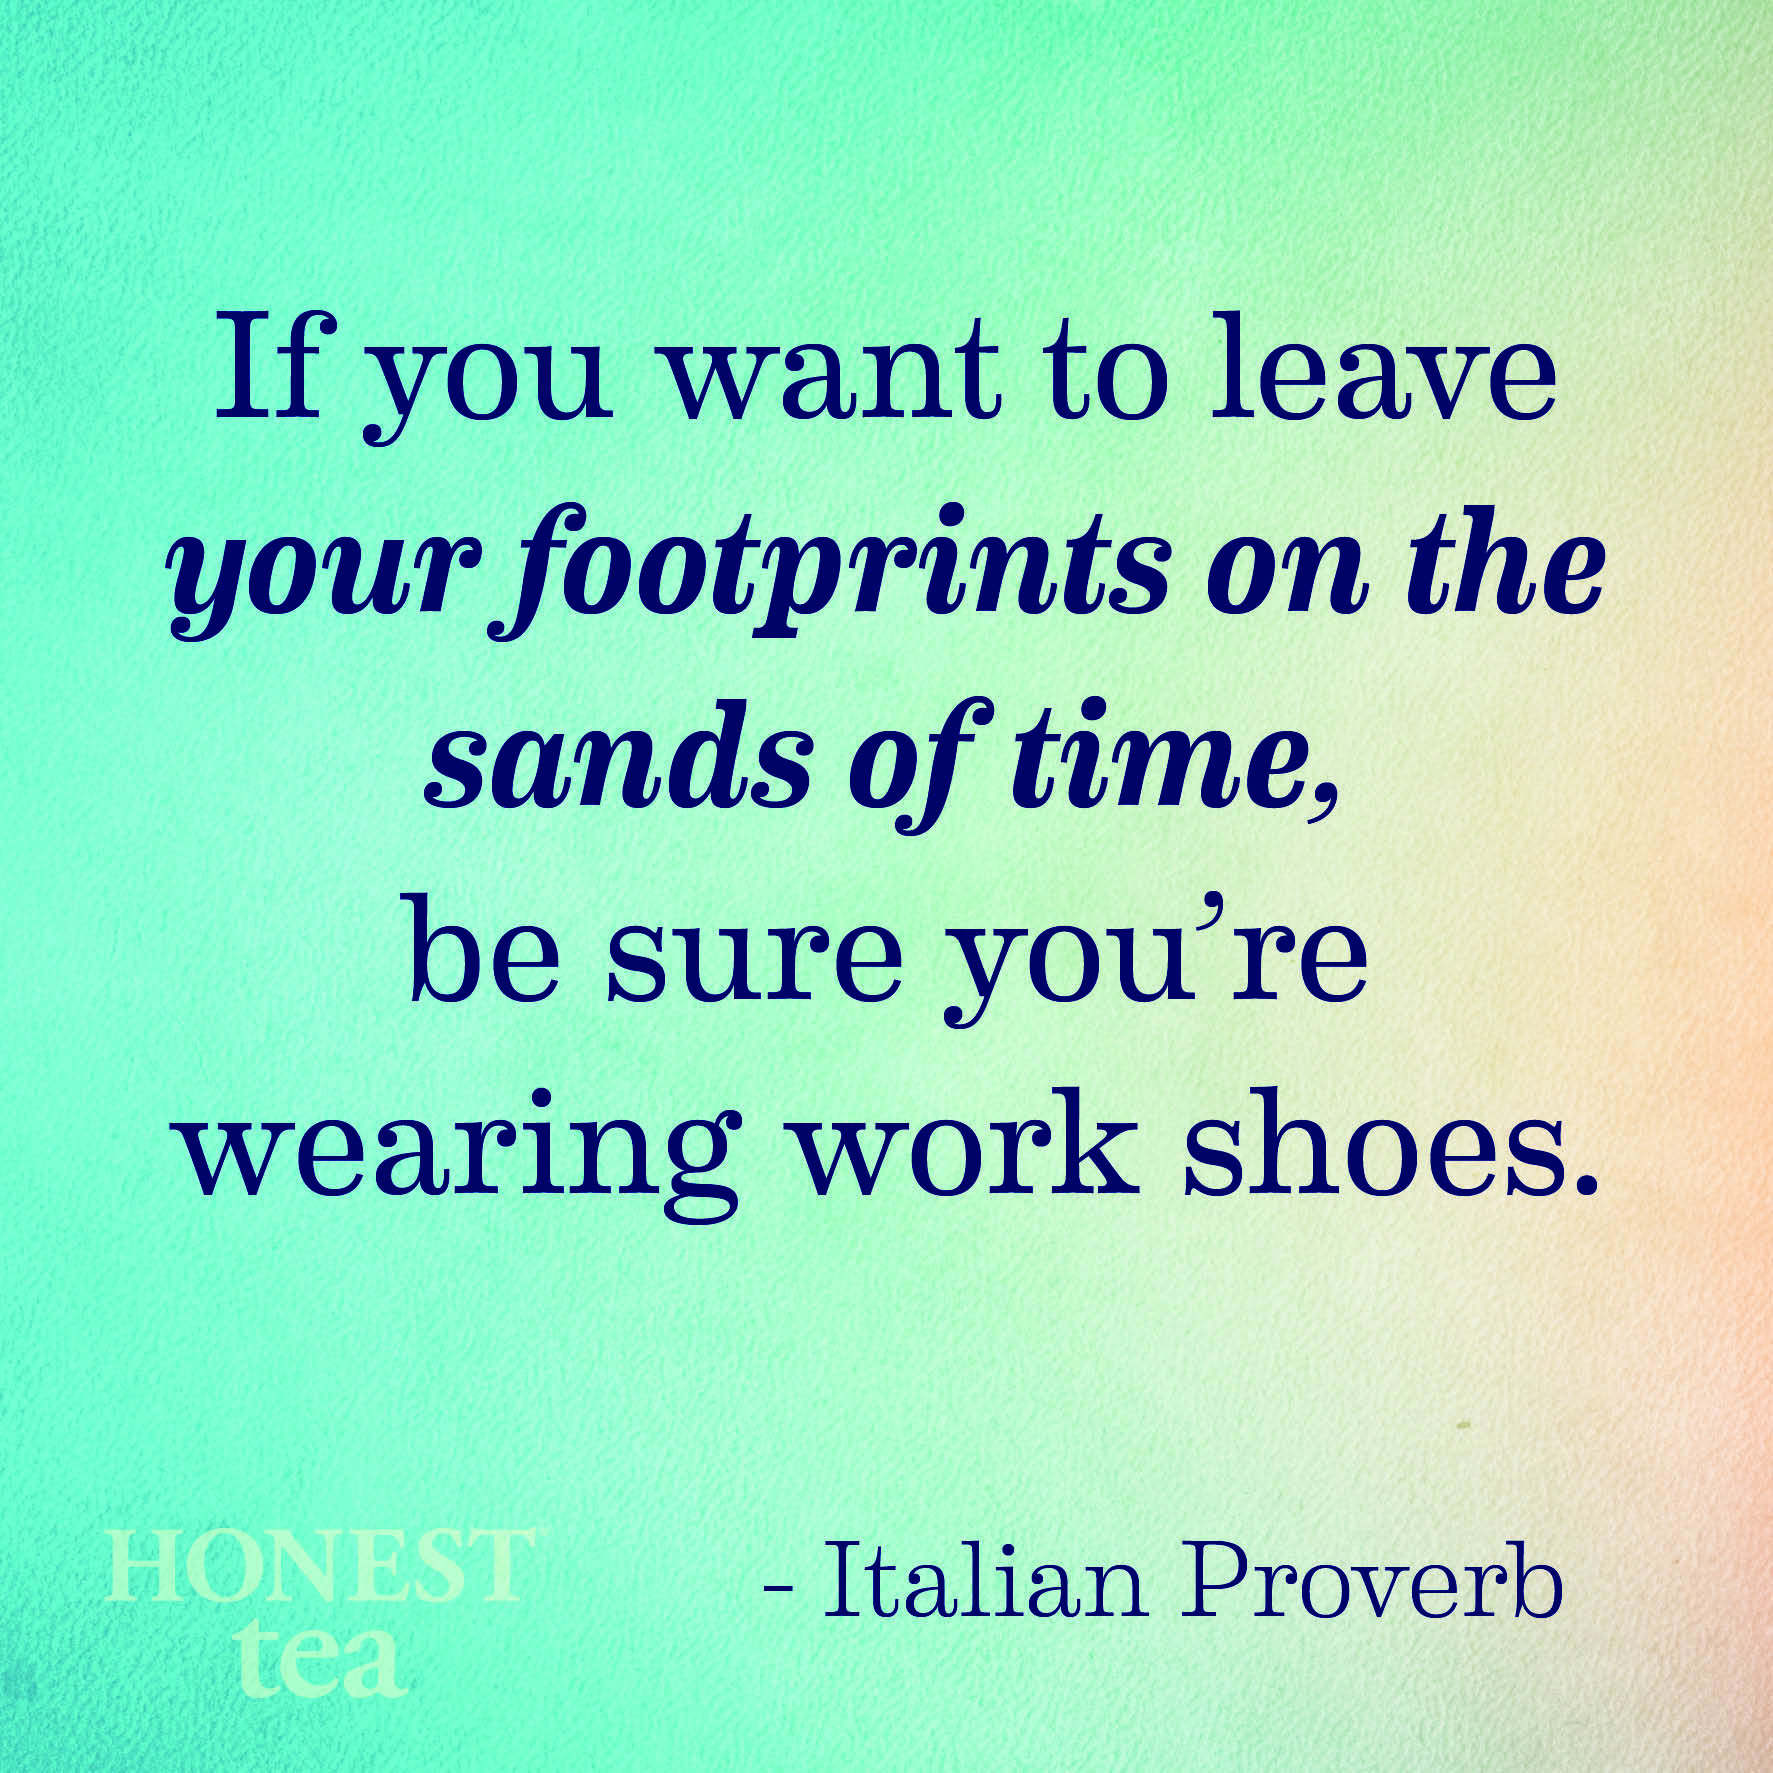 Daily Motivational Quotes For Work Italian Proverb  Quotes To Inspire  Pinterest  Italian Proverbs